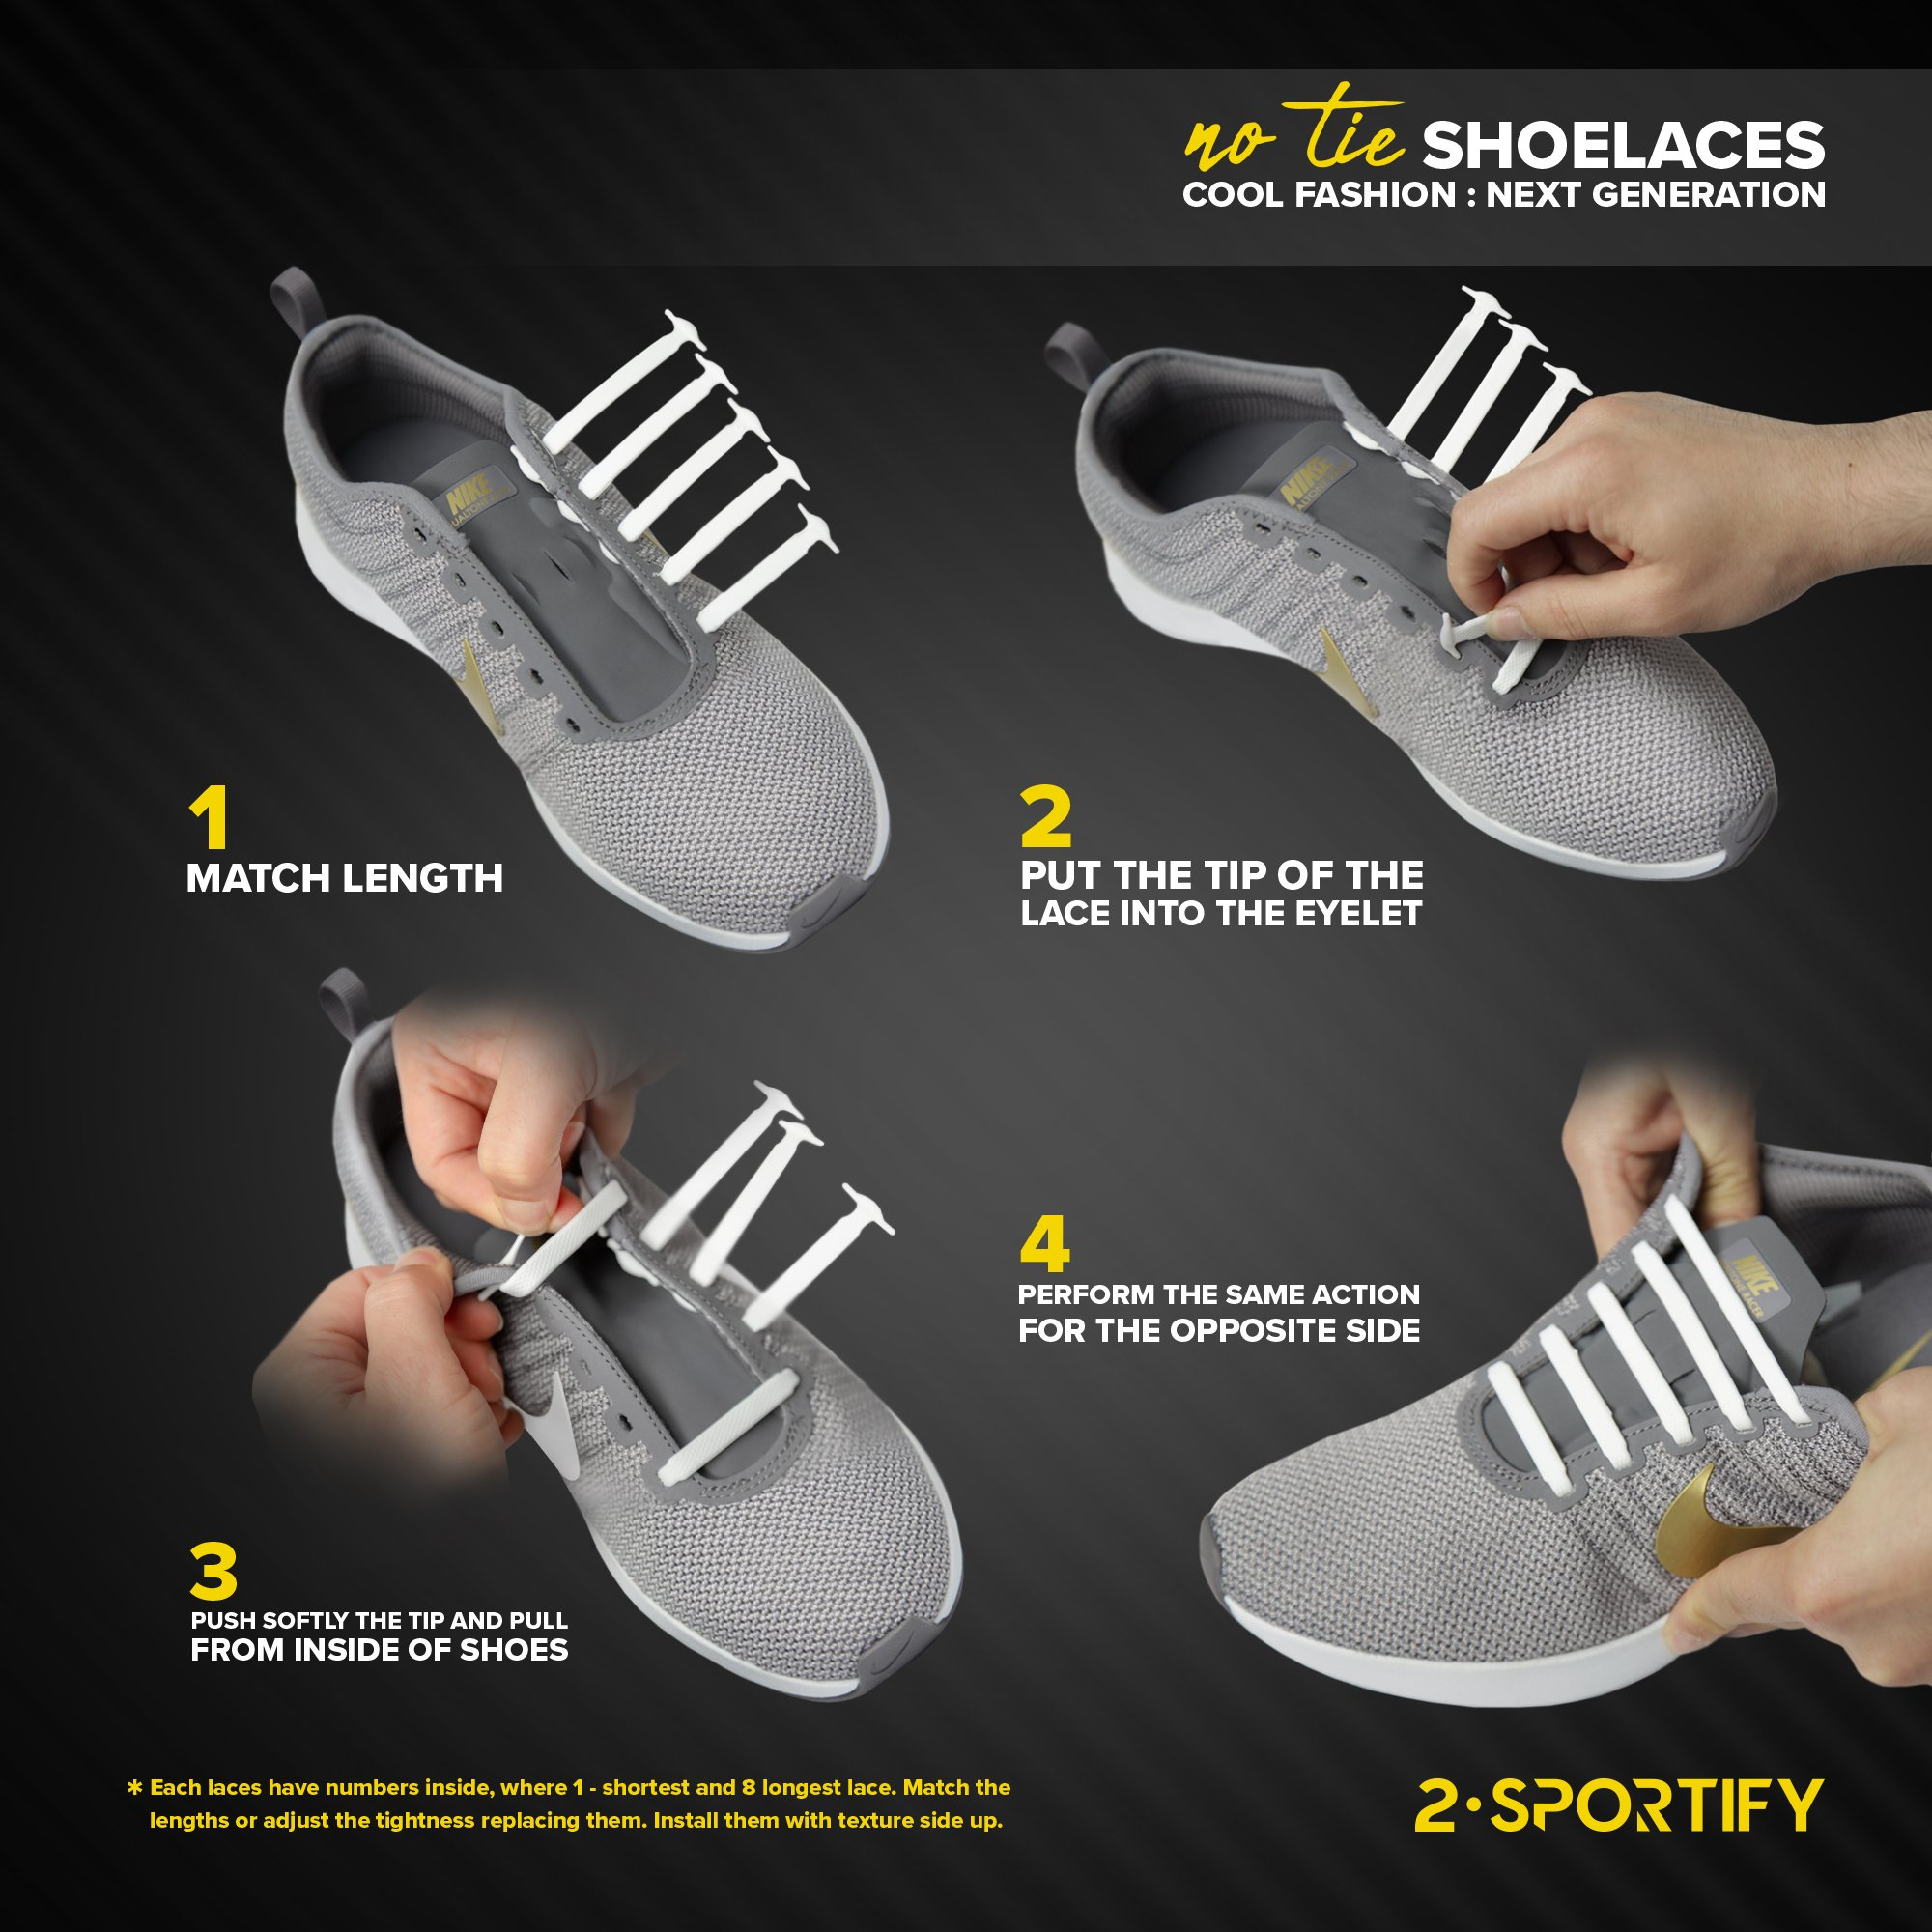 2SPORTIFY No Tie Shoelaces for Kids and Adults - Tieless Elastic Shoe lace for Sneakers Silicone Flat Laces 2 pair (Black-White)